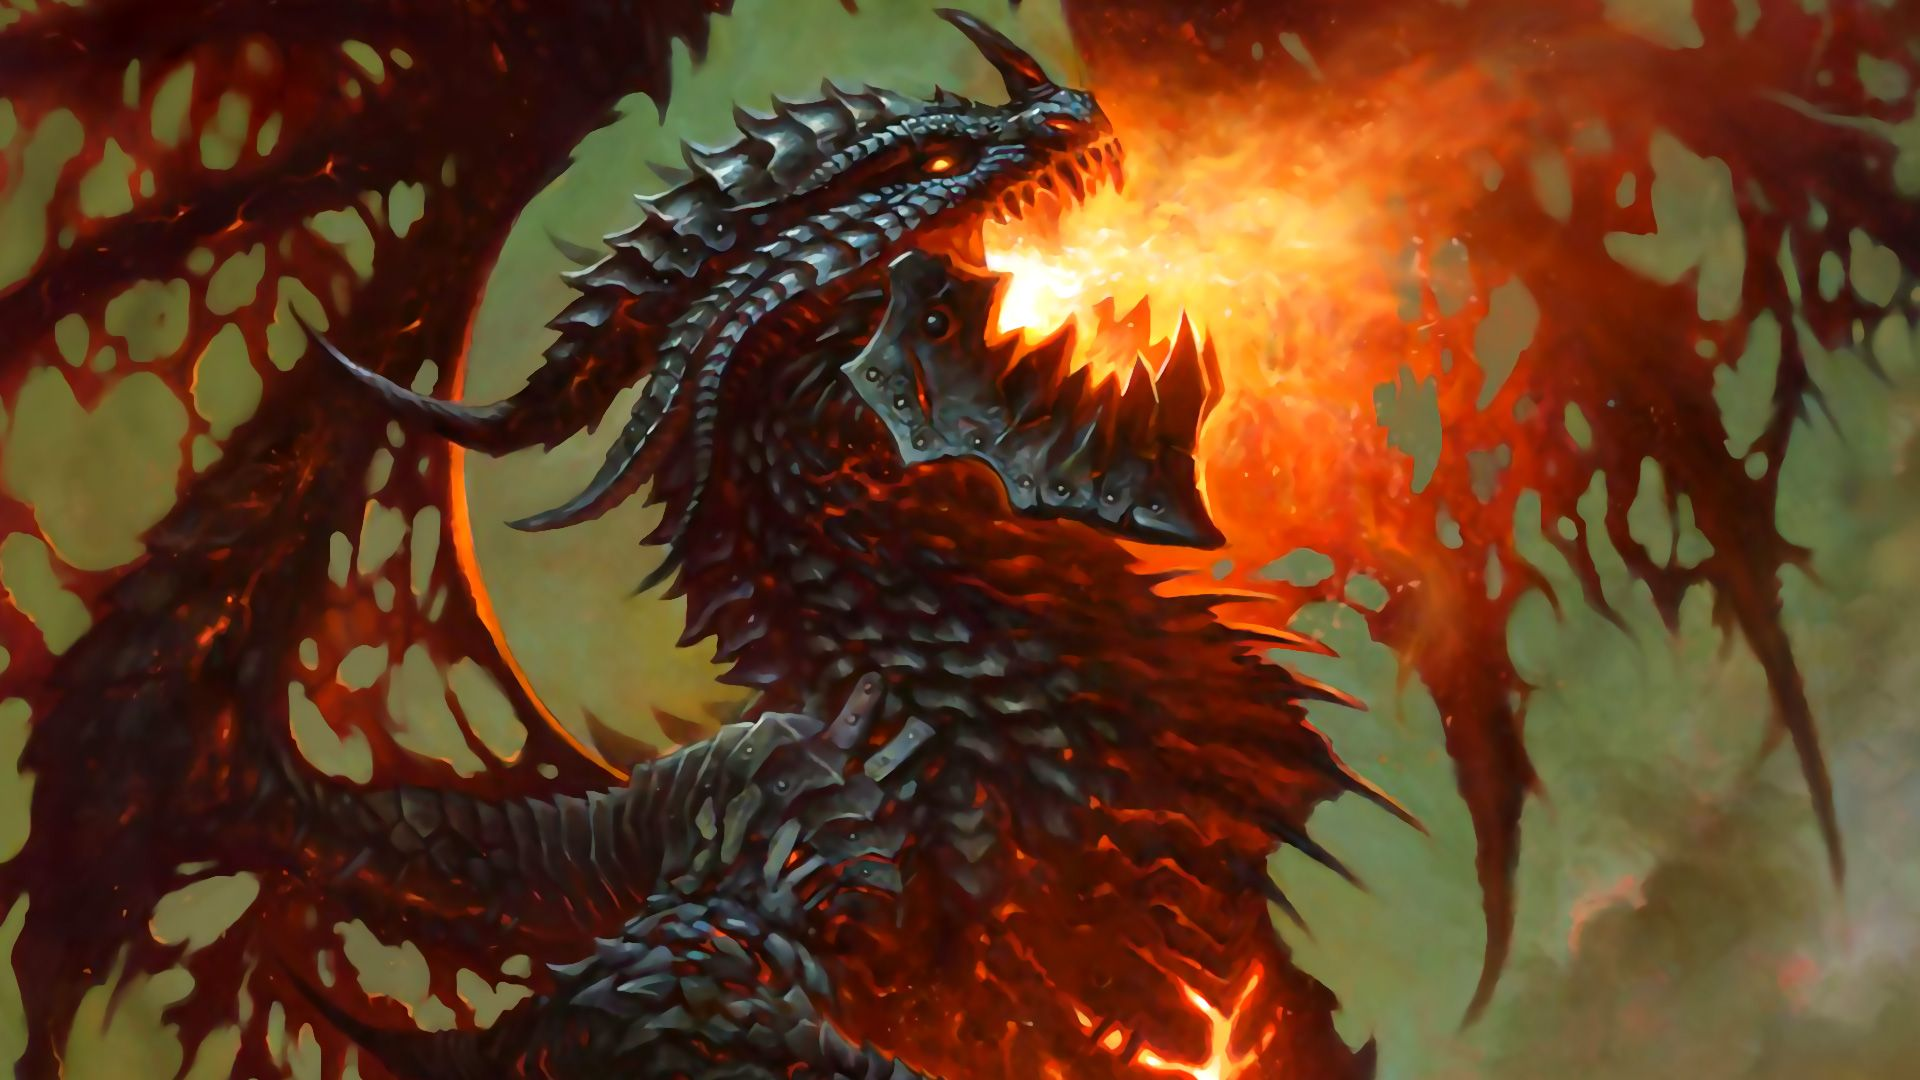 Deathwing Dragonlord Wallpaper Hearthstone Wallpapers in 2019 1920x1080